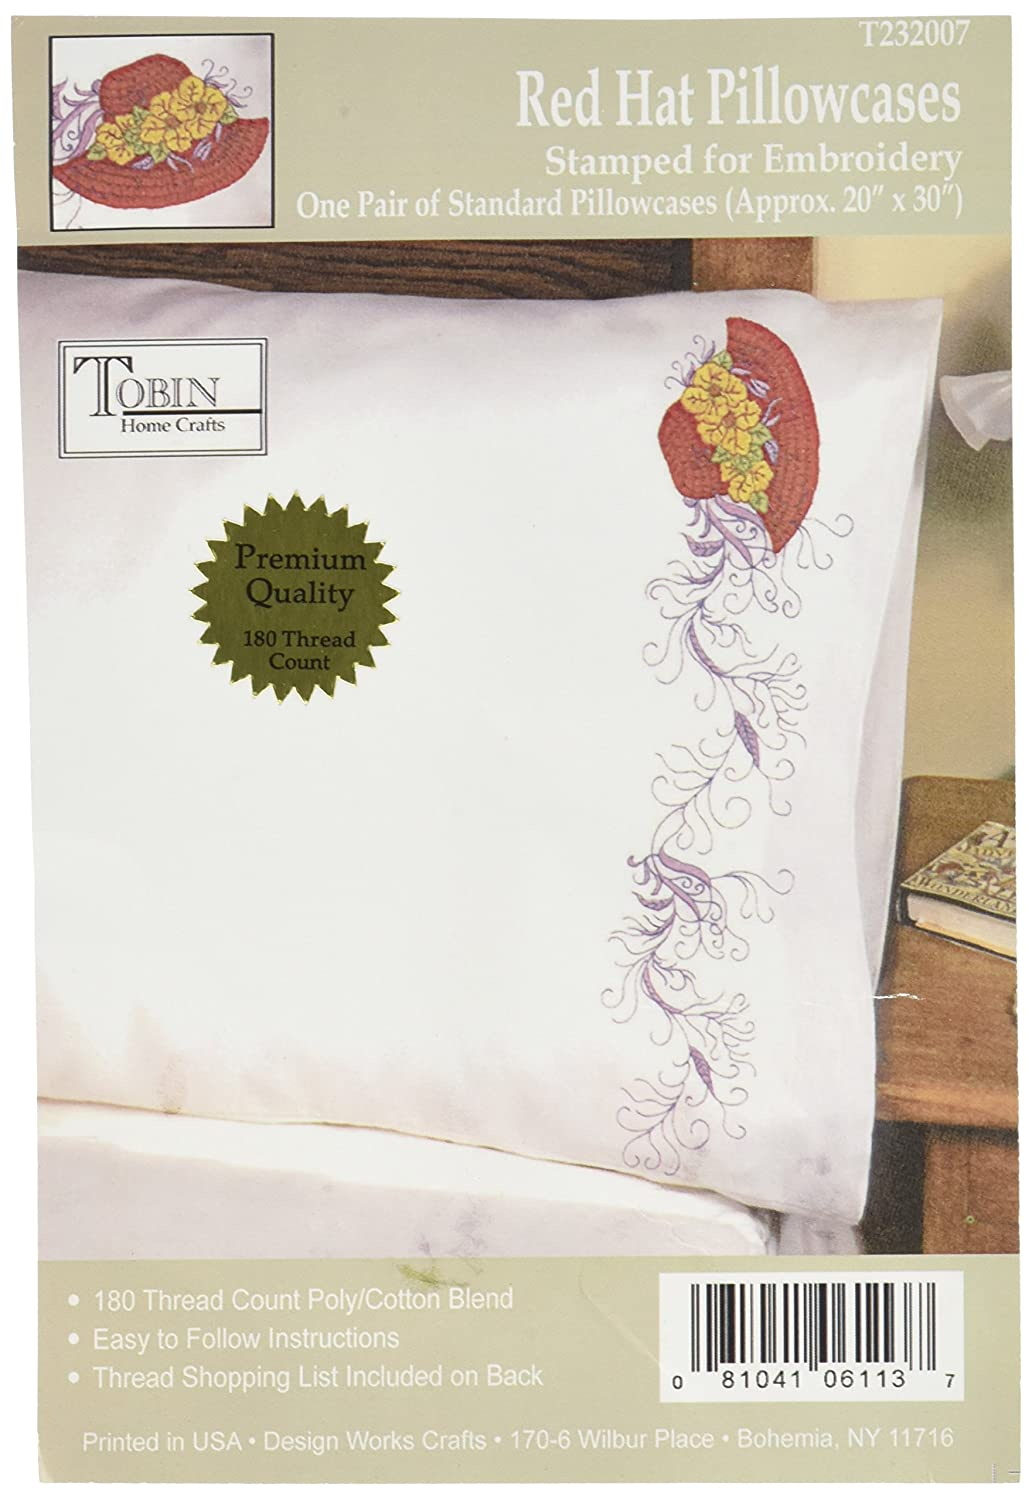 Dreamcatcher Tobin 232040 Stamped Pillowcase Pair for Embroidery